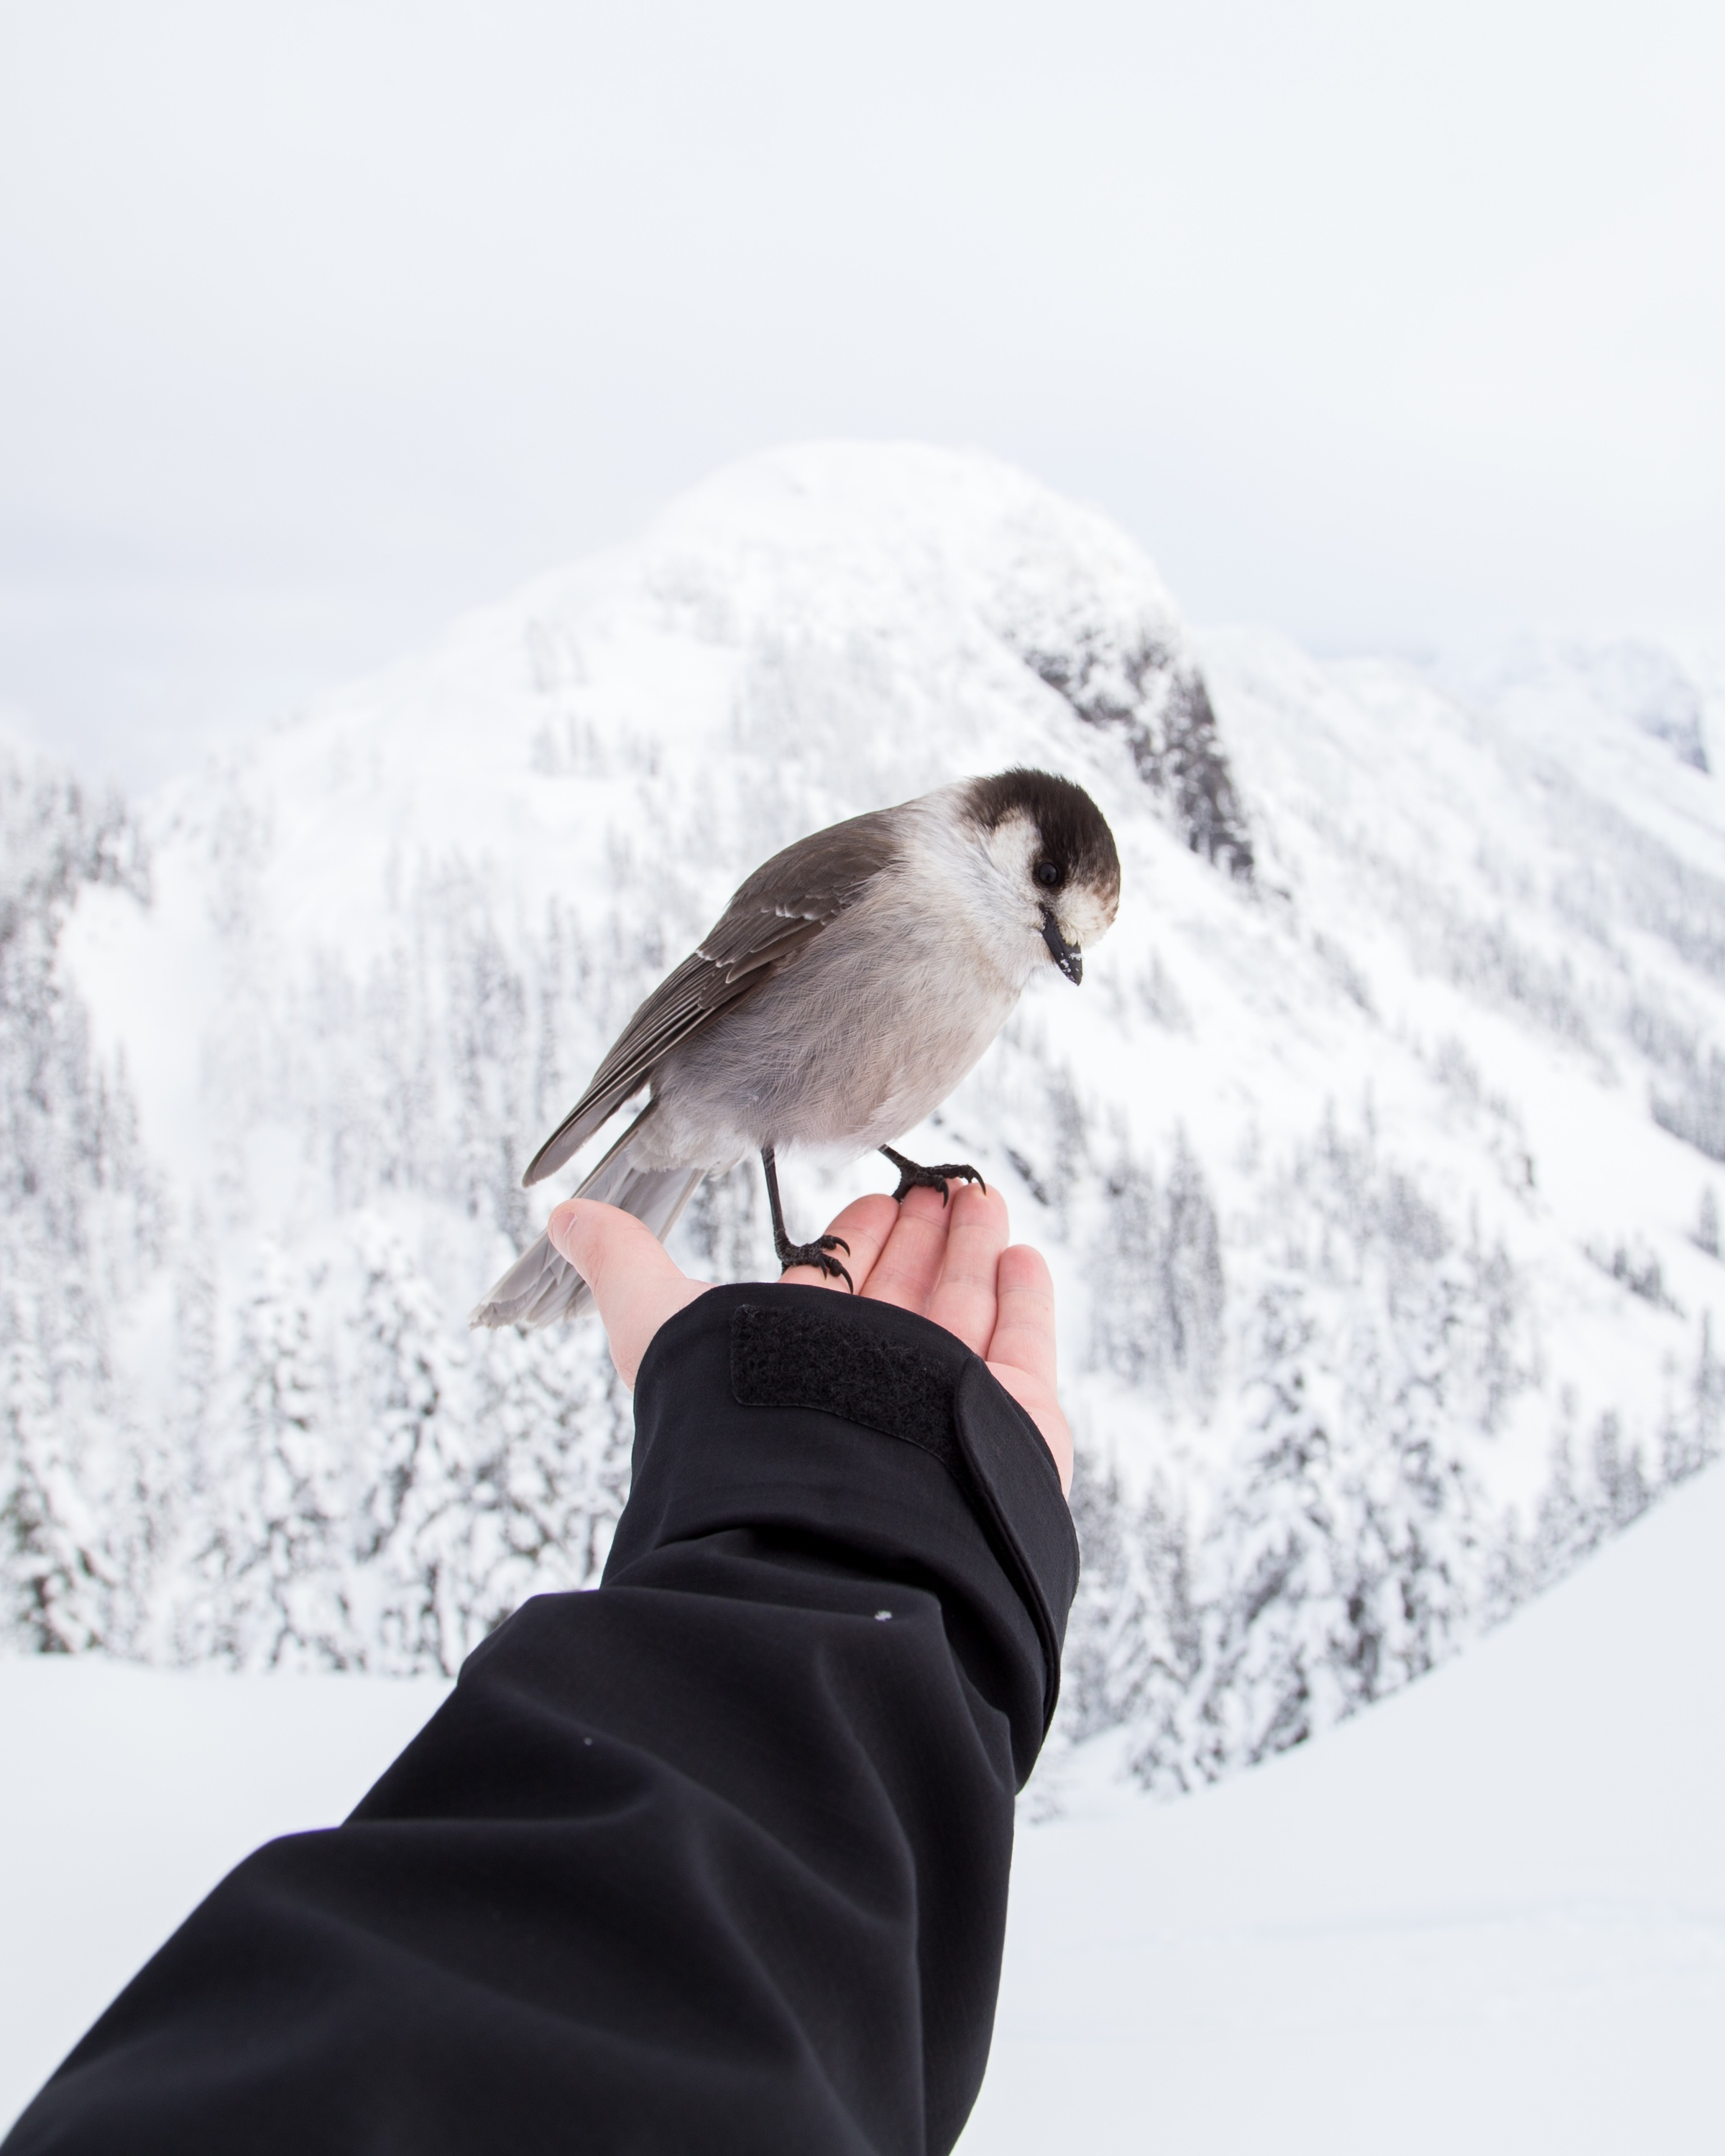 With a snow-covered mountain the background, a human harm reaches out and, on their bare fingers, lightly holds a curious bird.